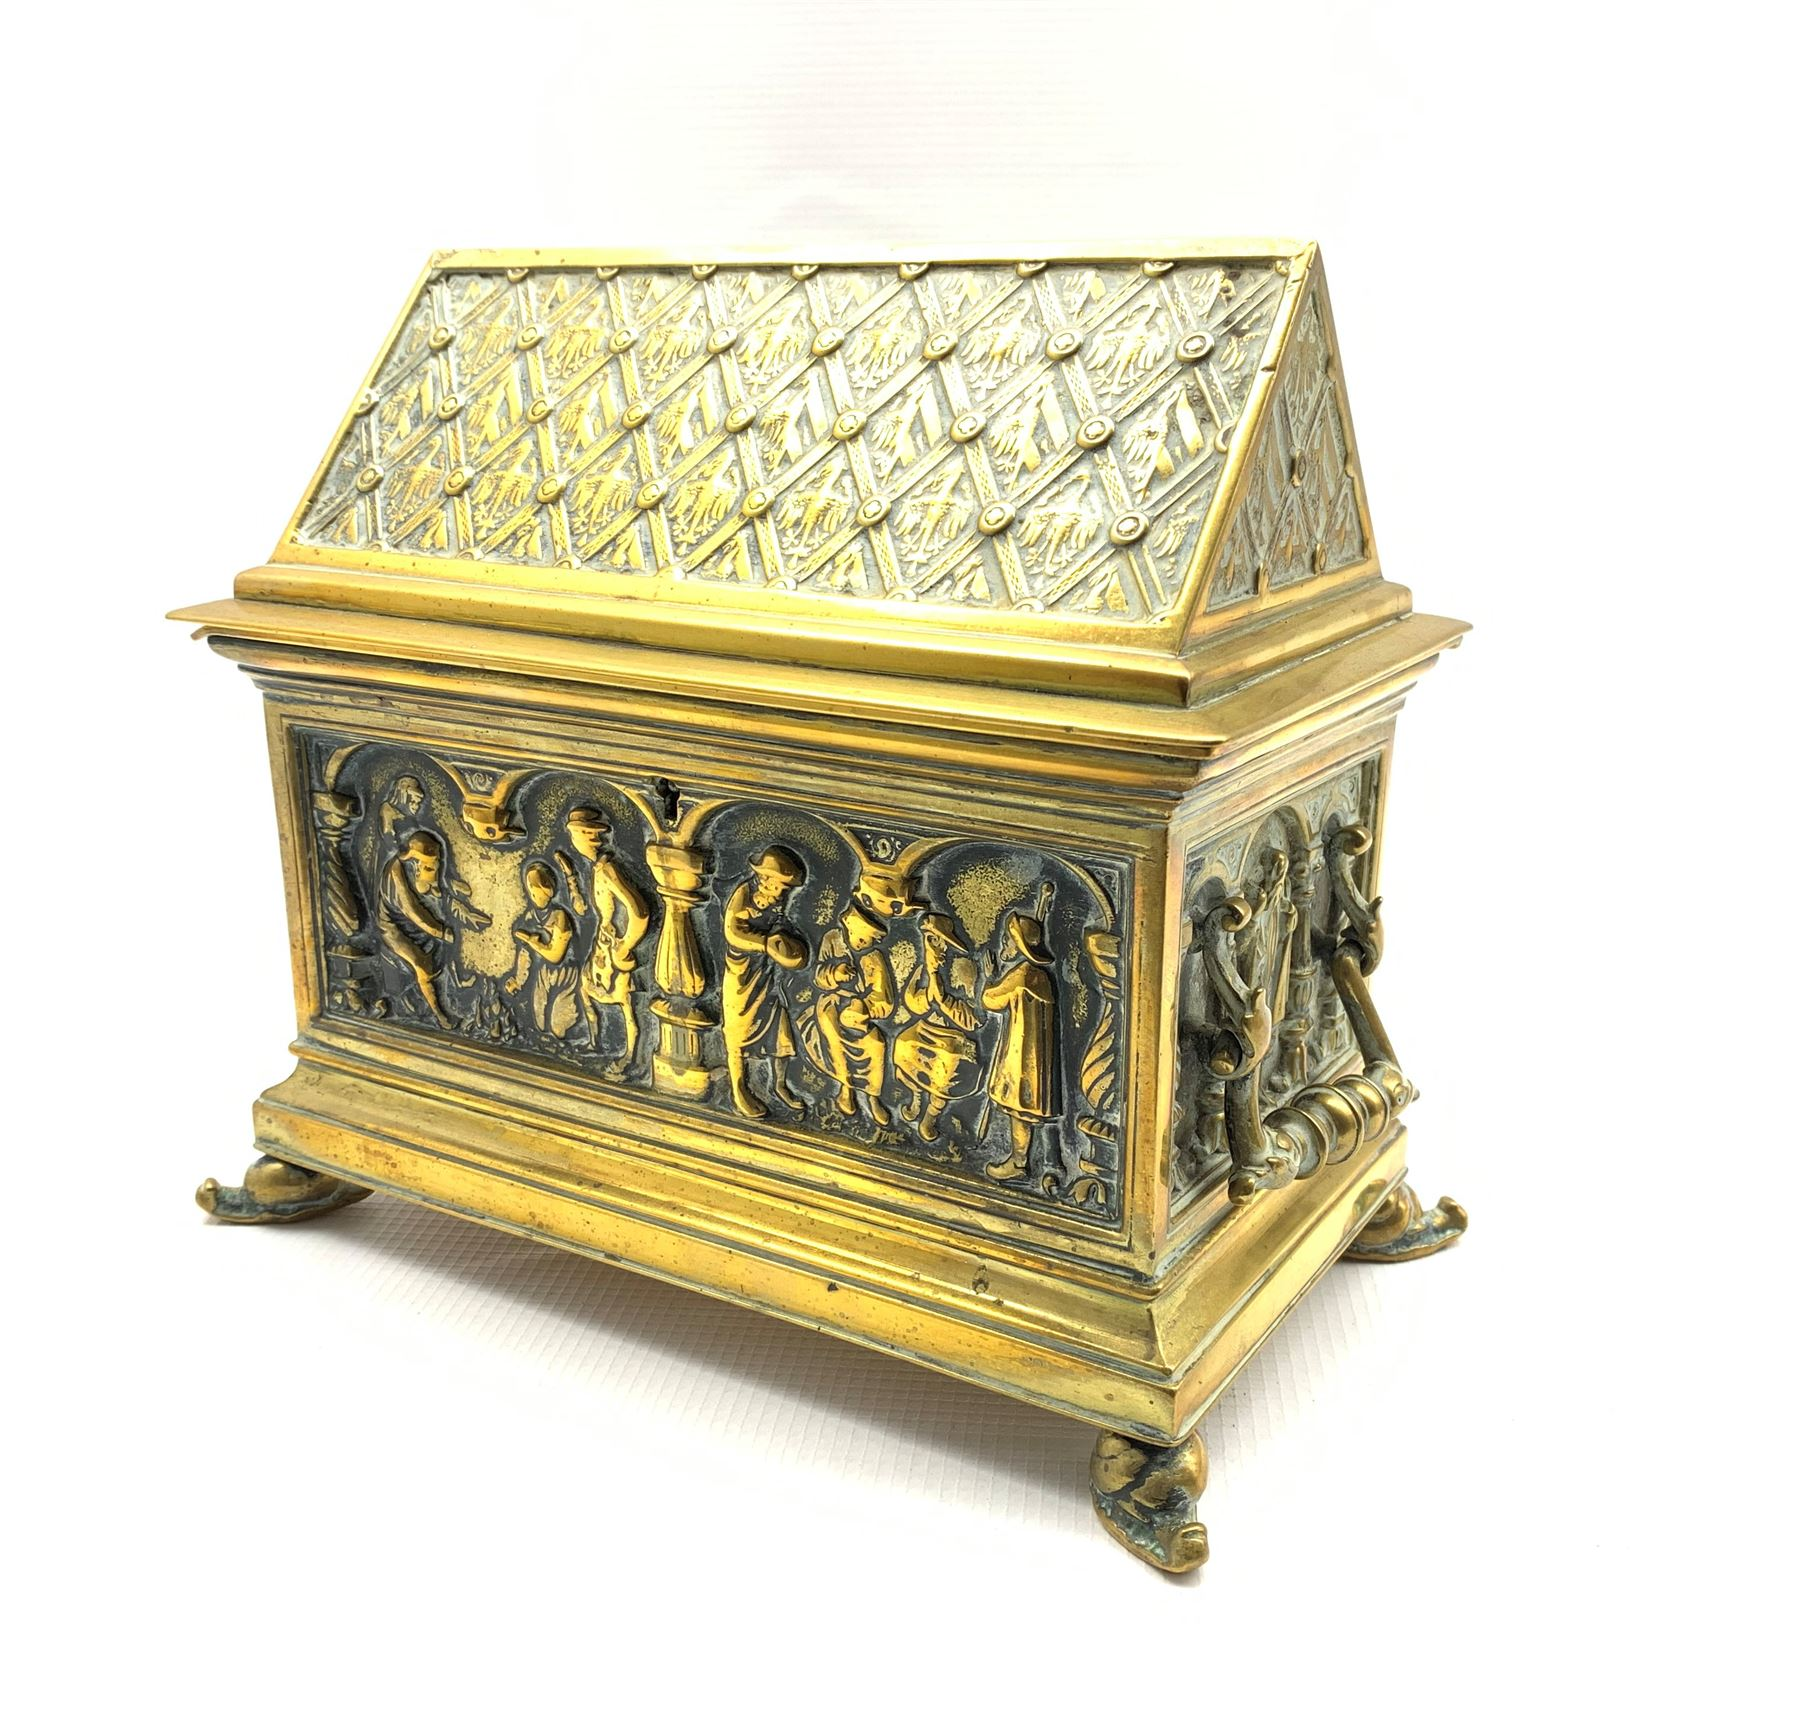 19th century twin-handled brass casket by Adolph Frankau & Co. - Image 2 of 4